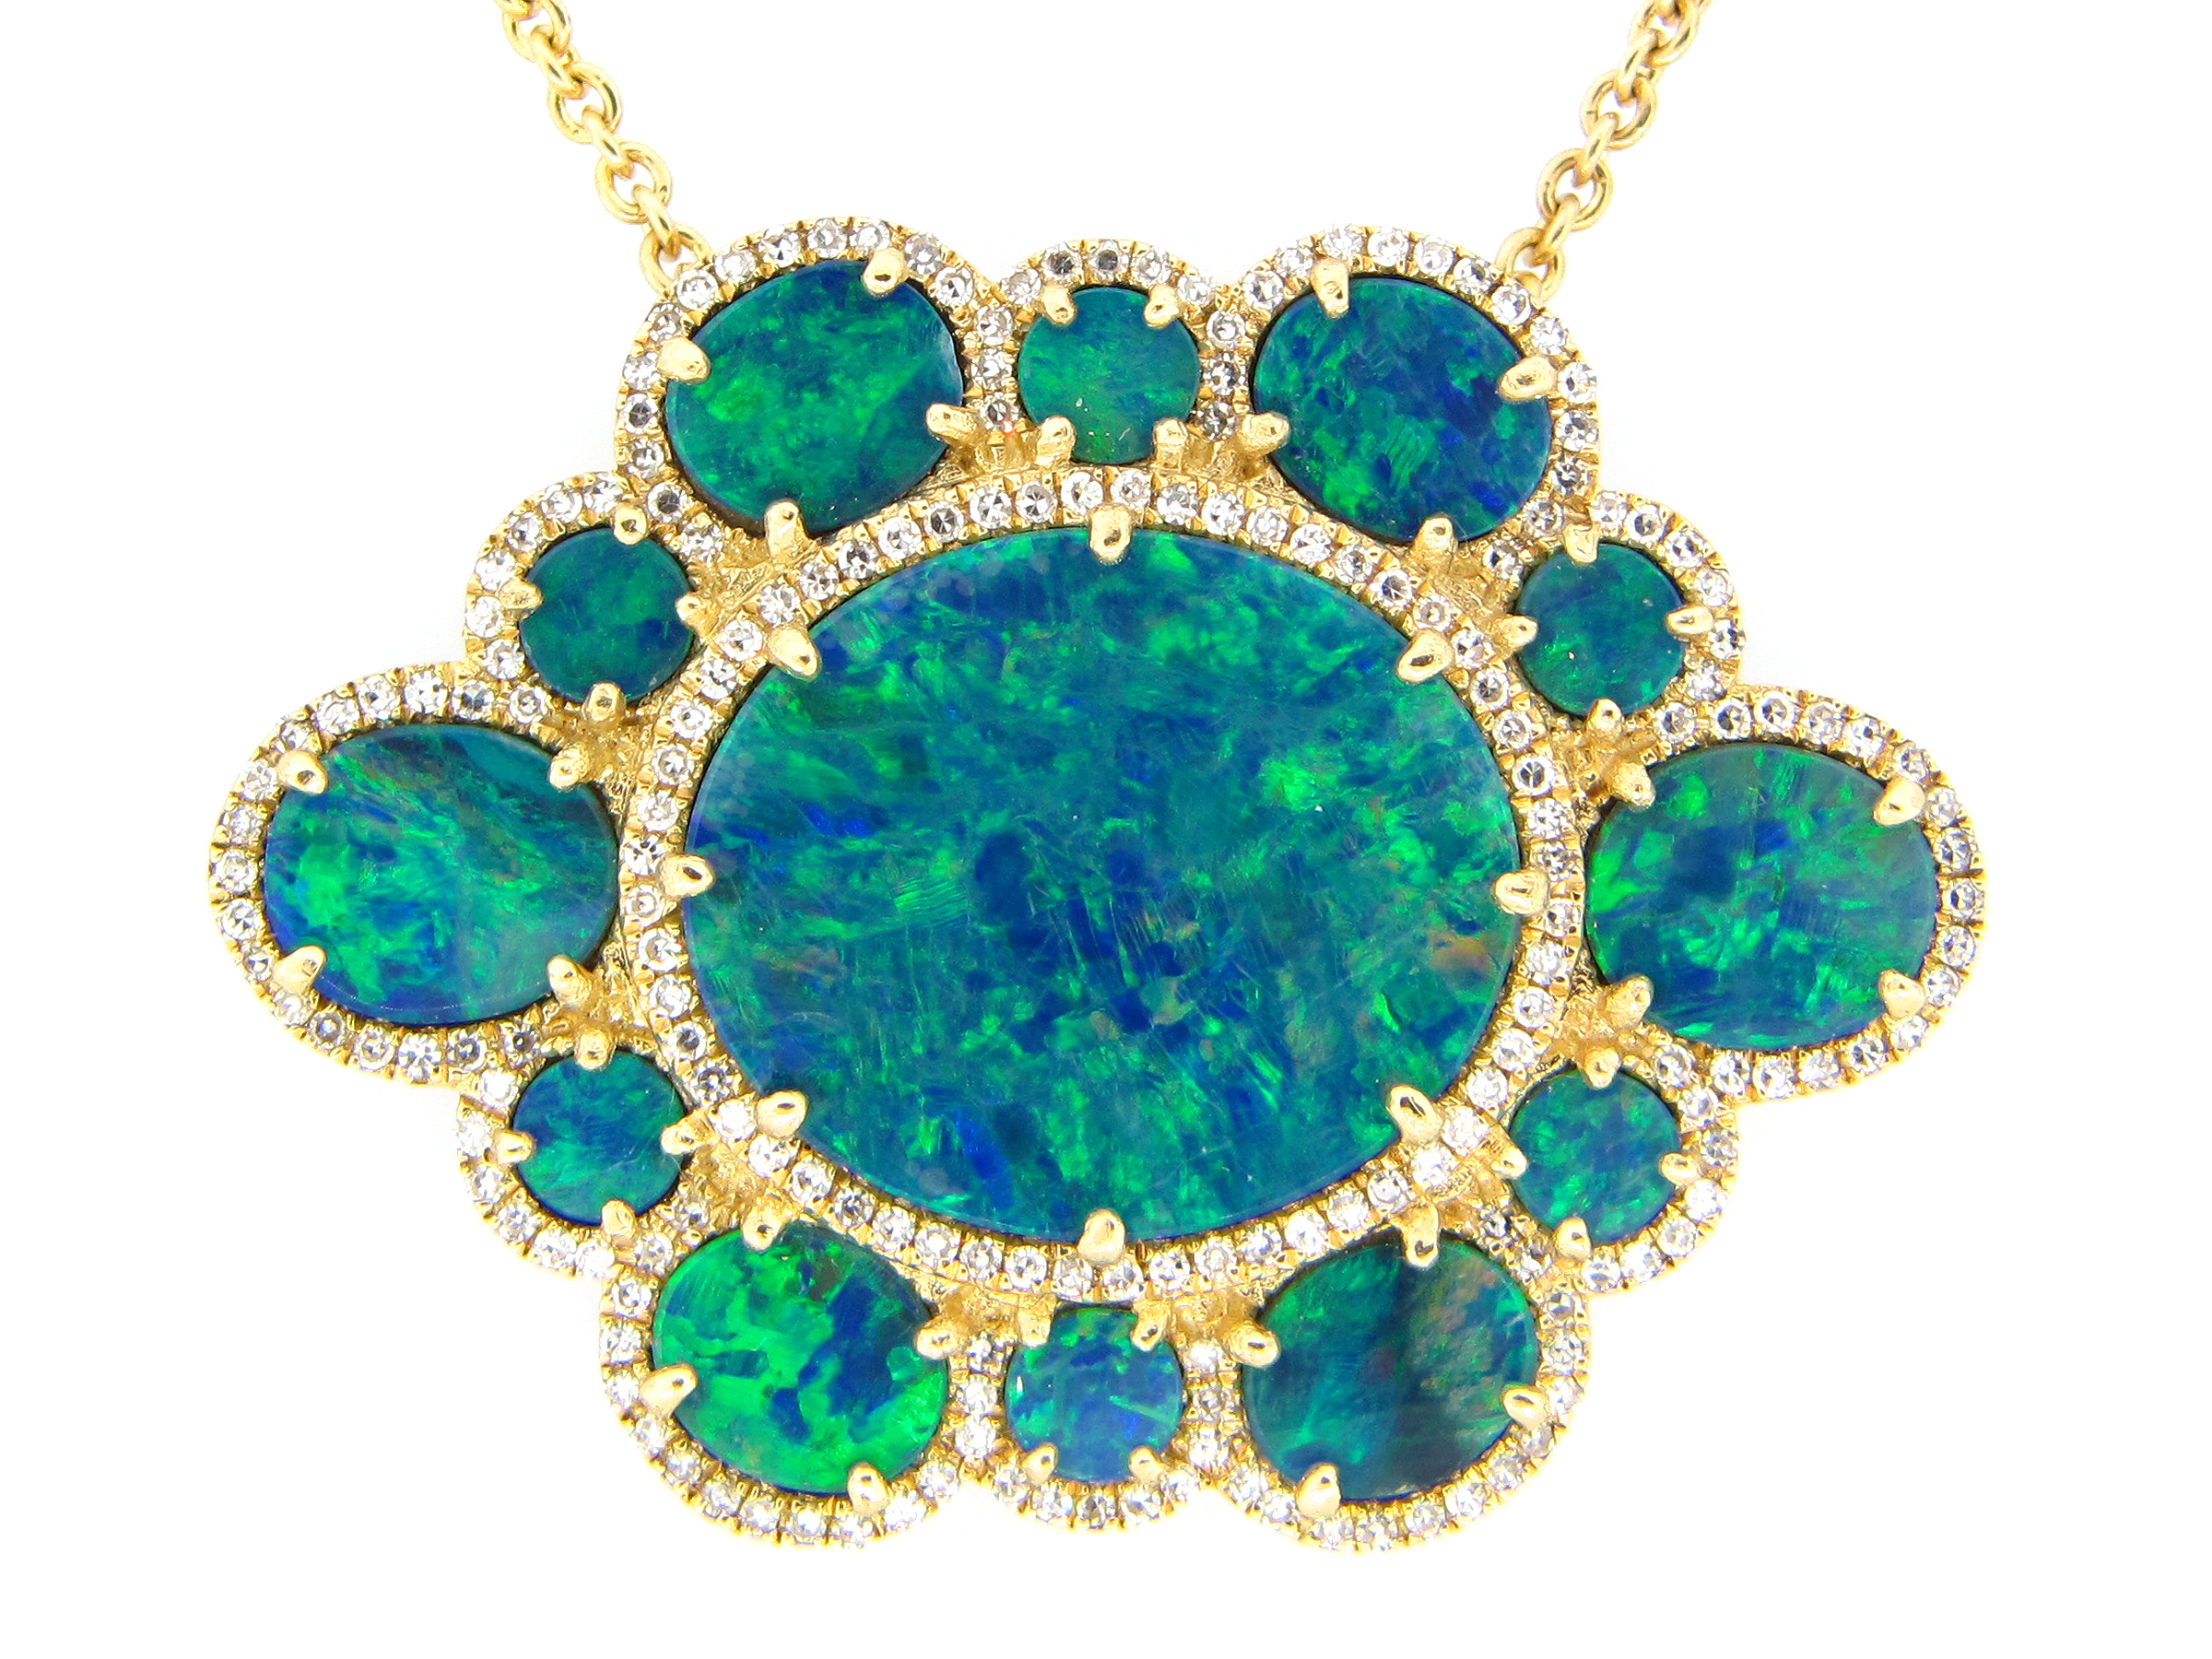 Black Opal & Diamond Pendant Necklace